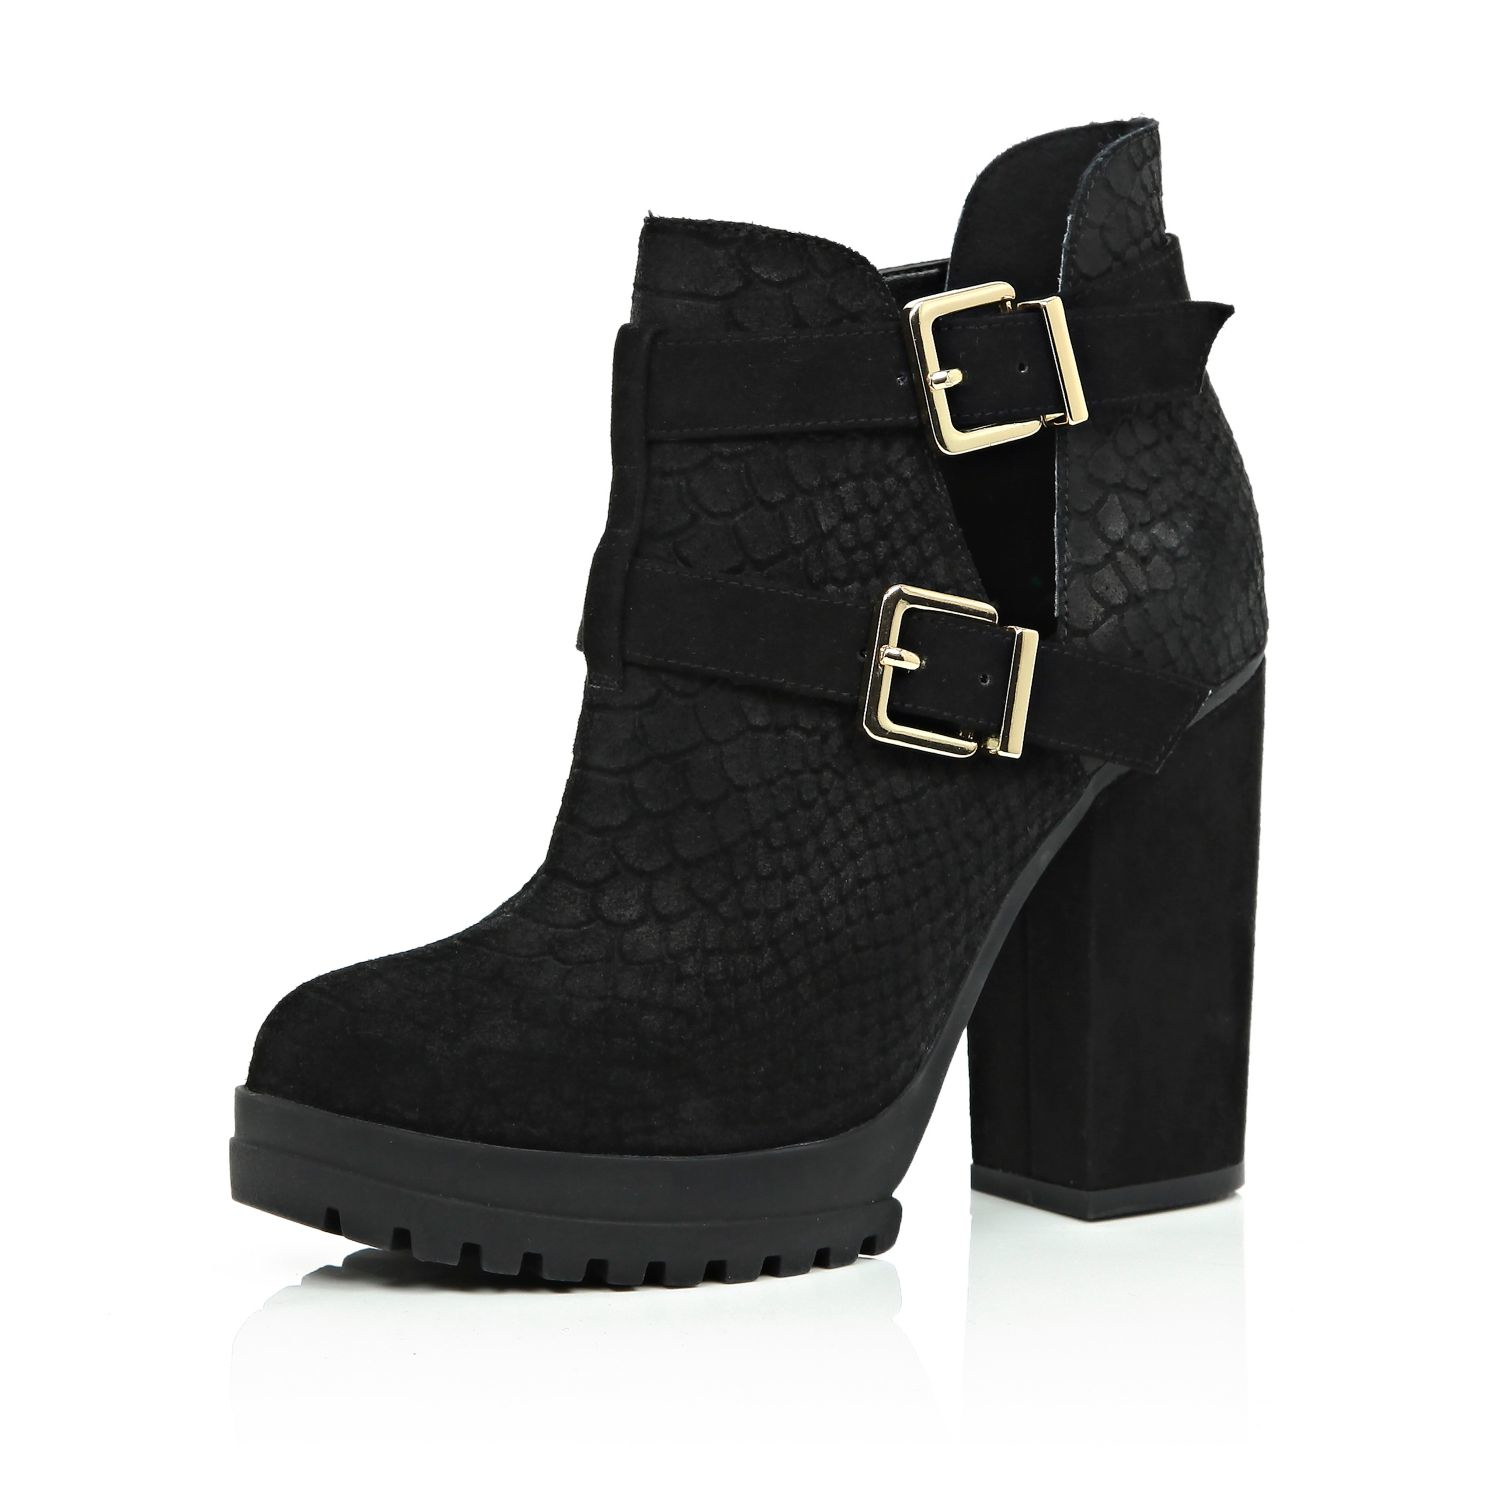 river island black suede cut out ankle boots in black lyst